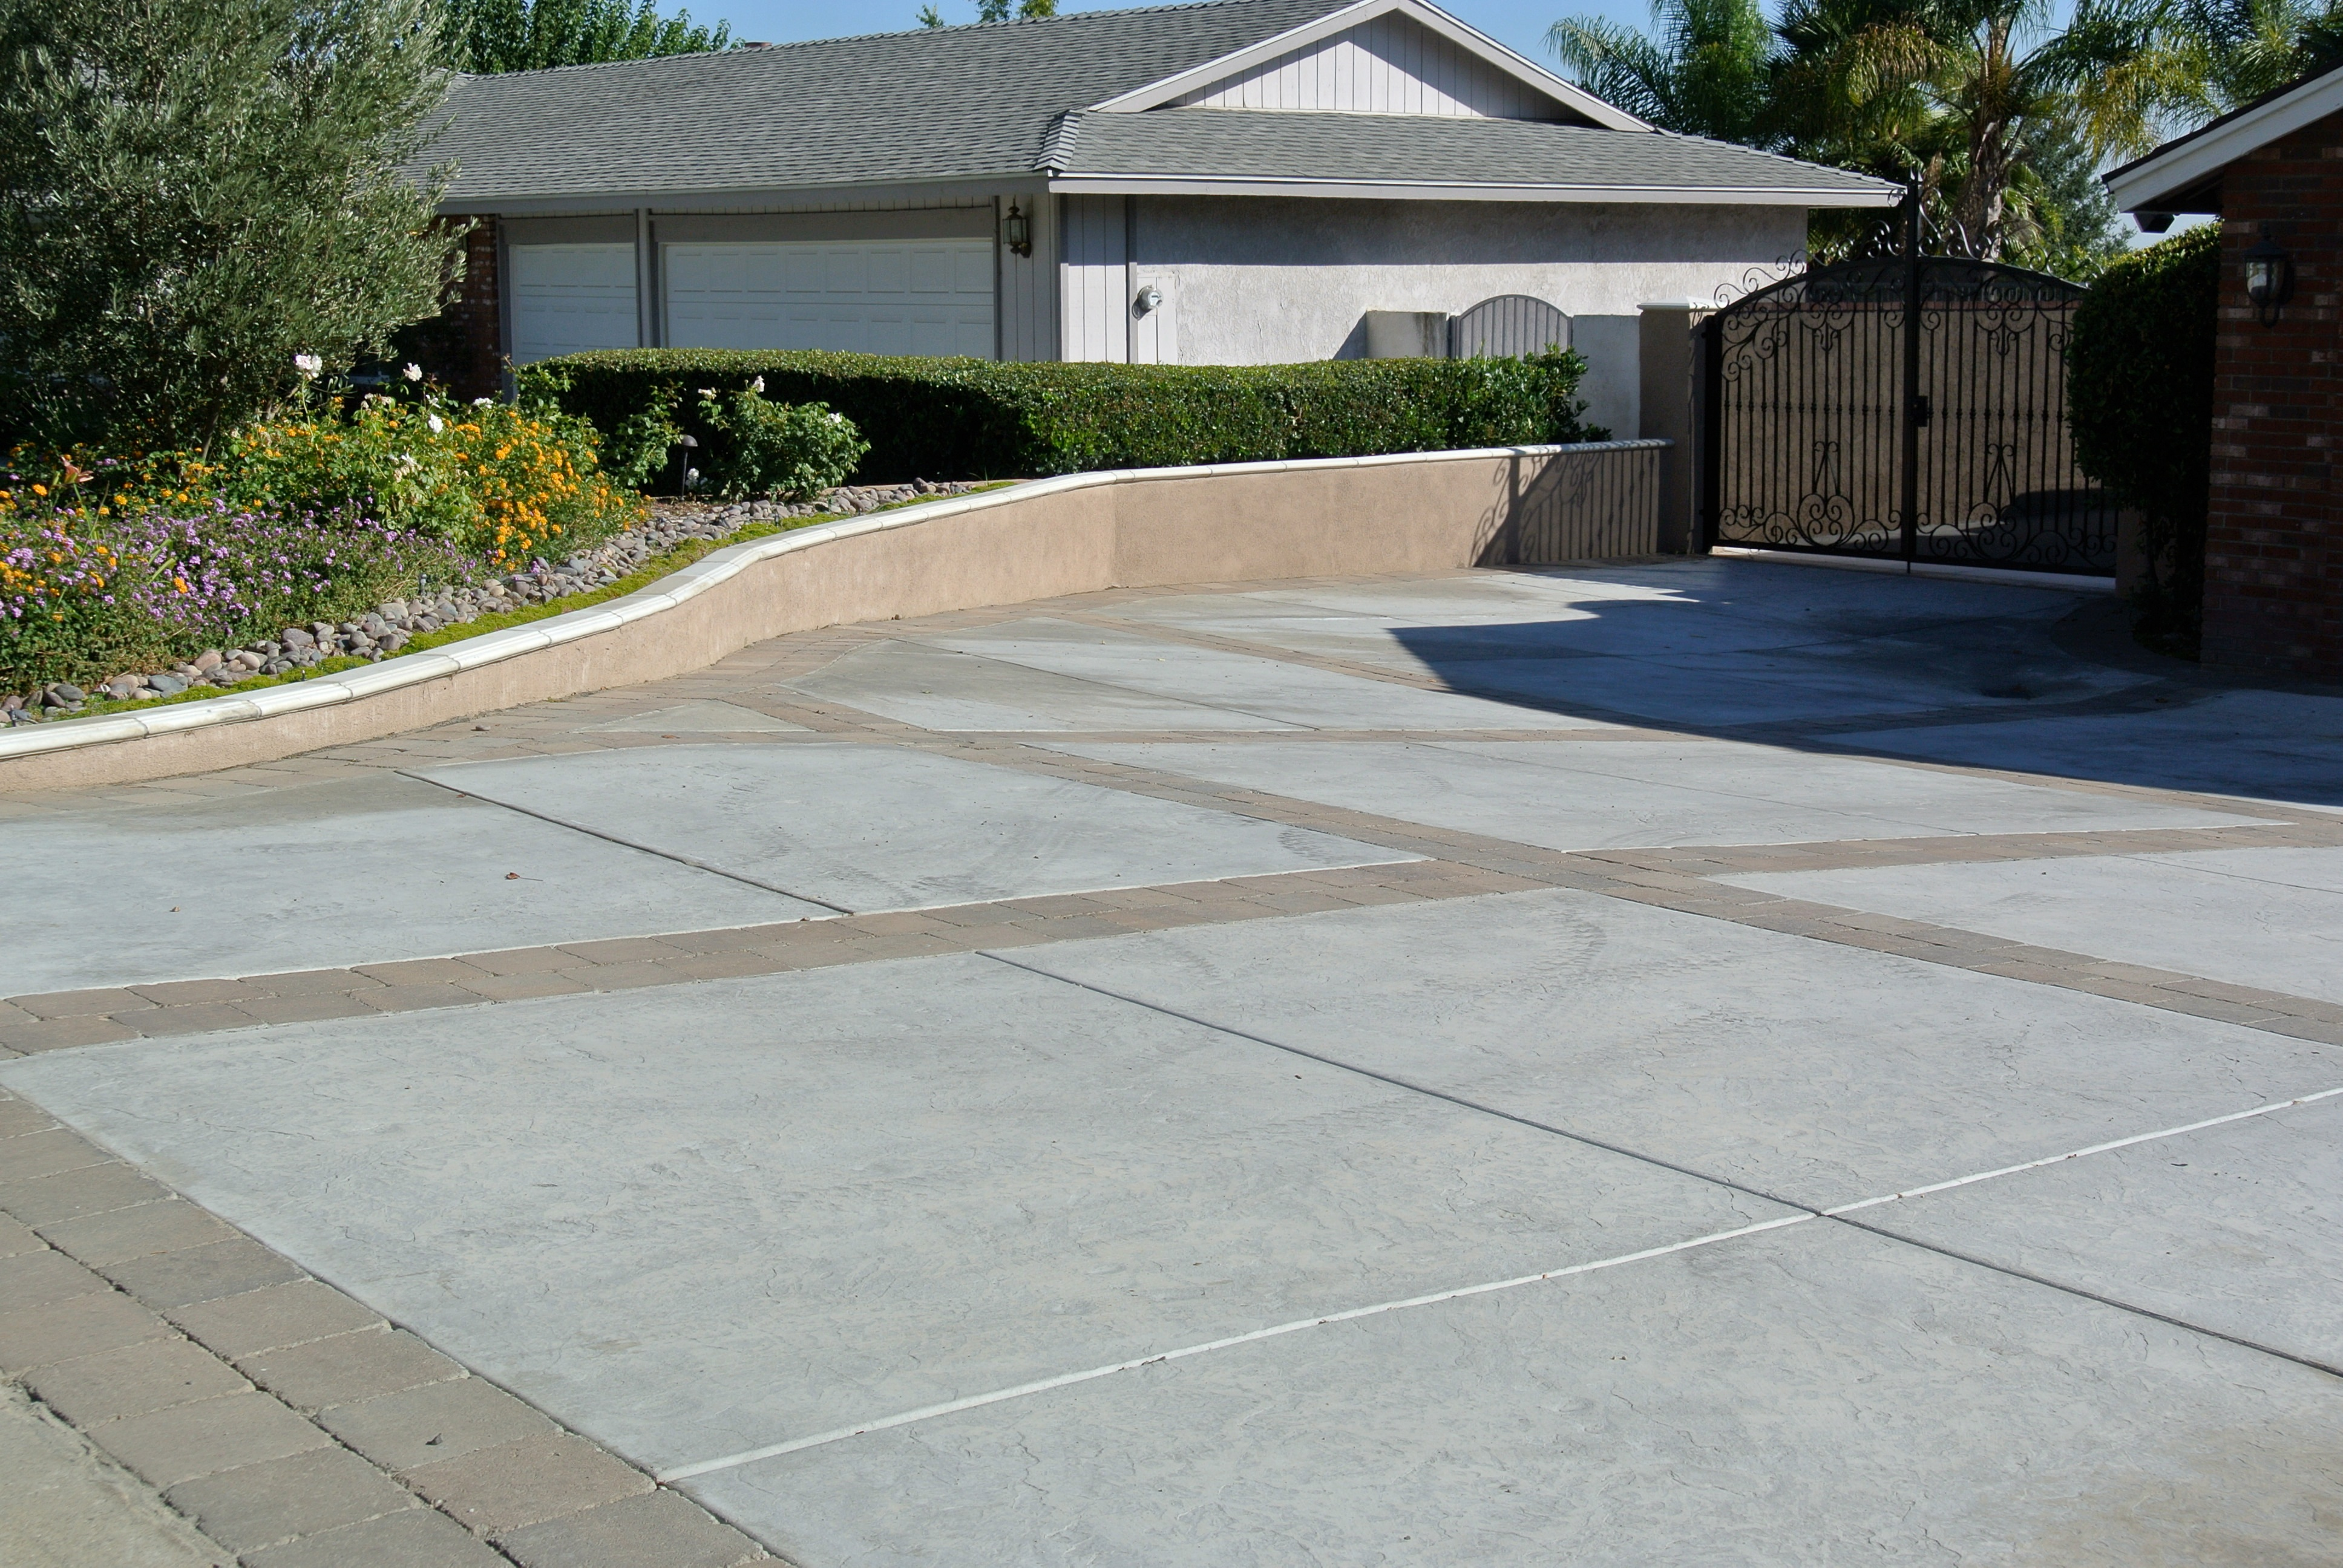 Concrete Driveway Example With Wrought Iron Gate And